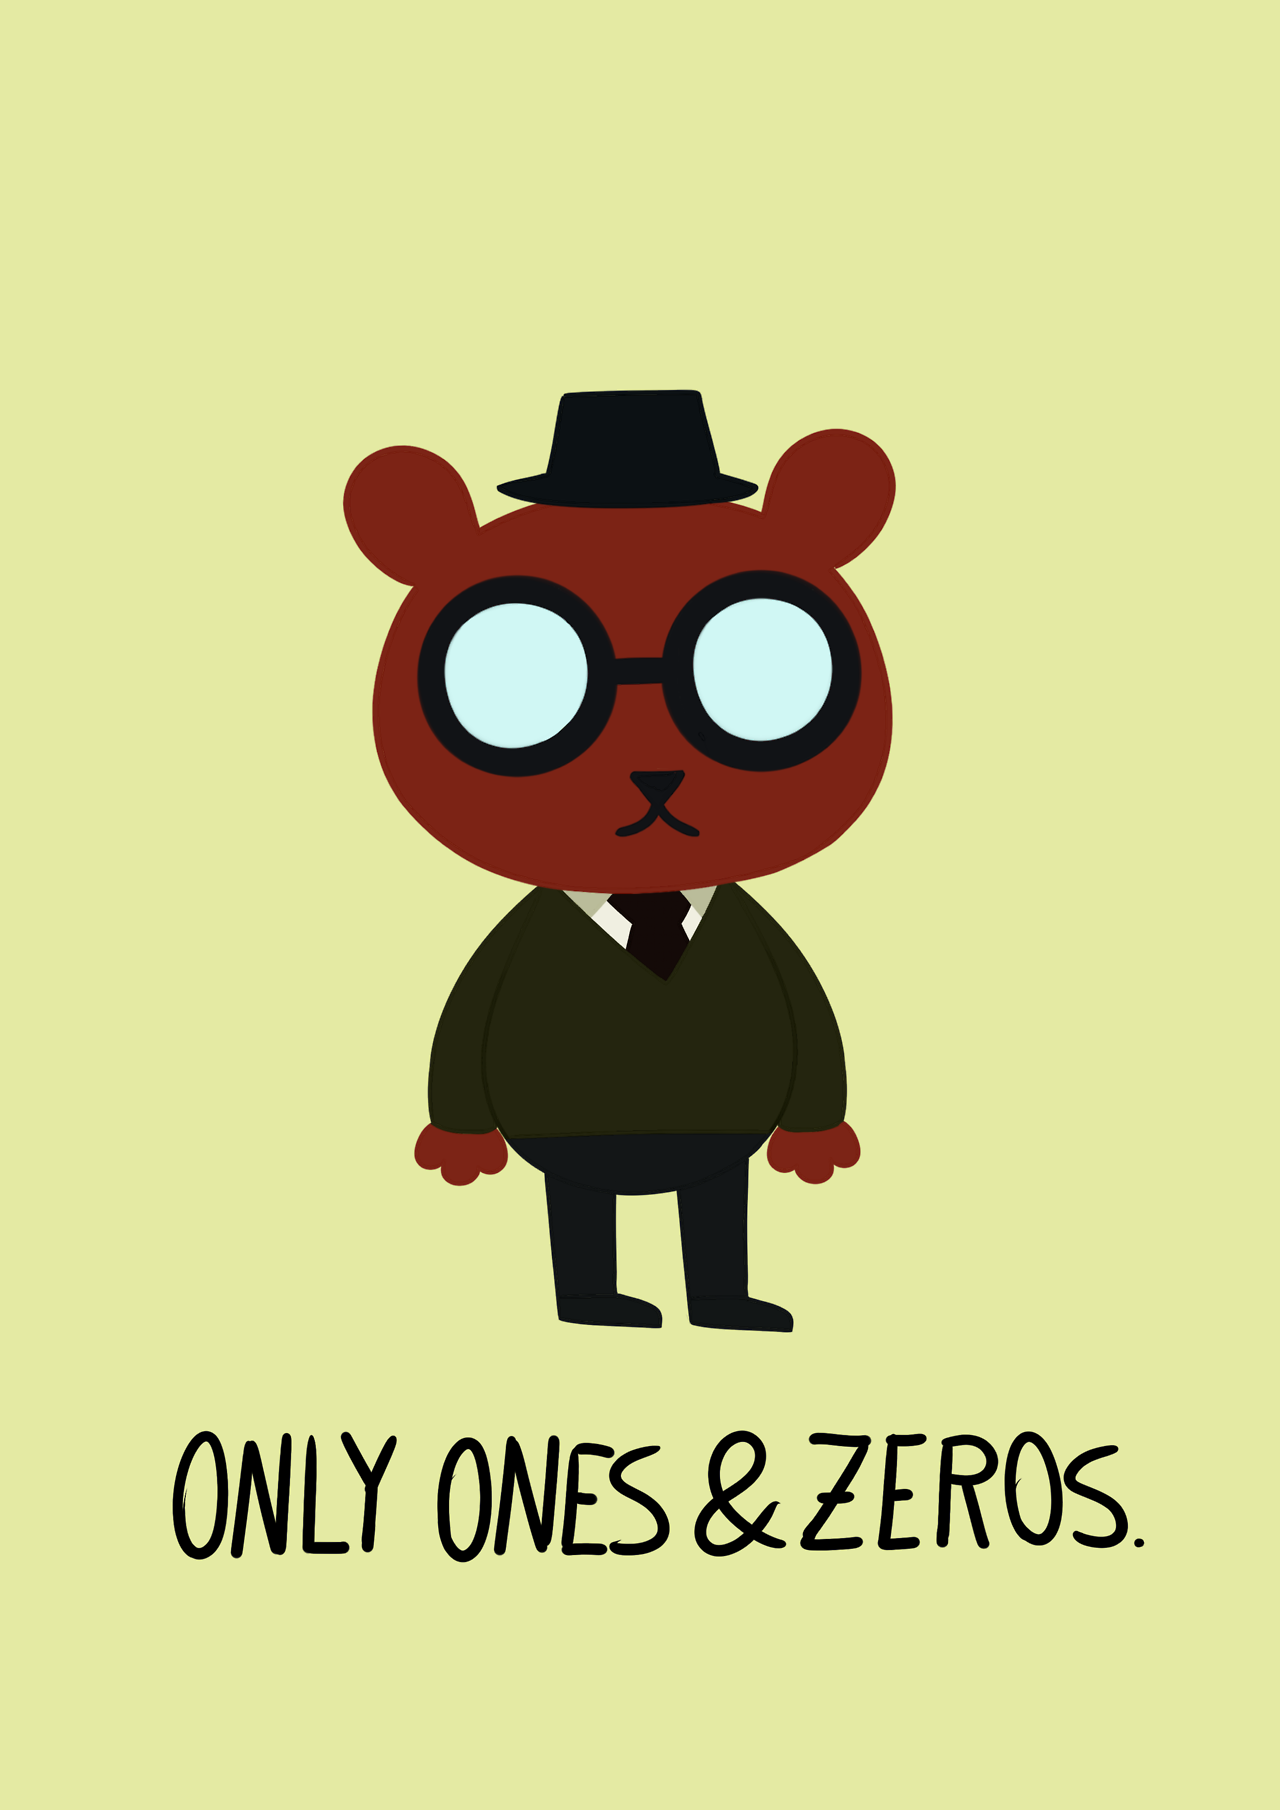 Nitw tumblr night woods. Clipart definition poster design